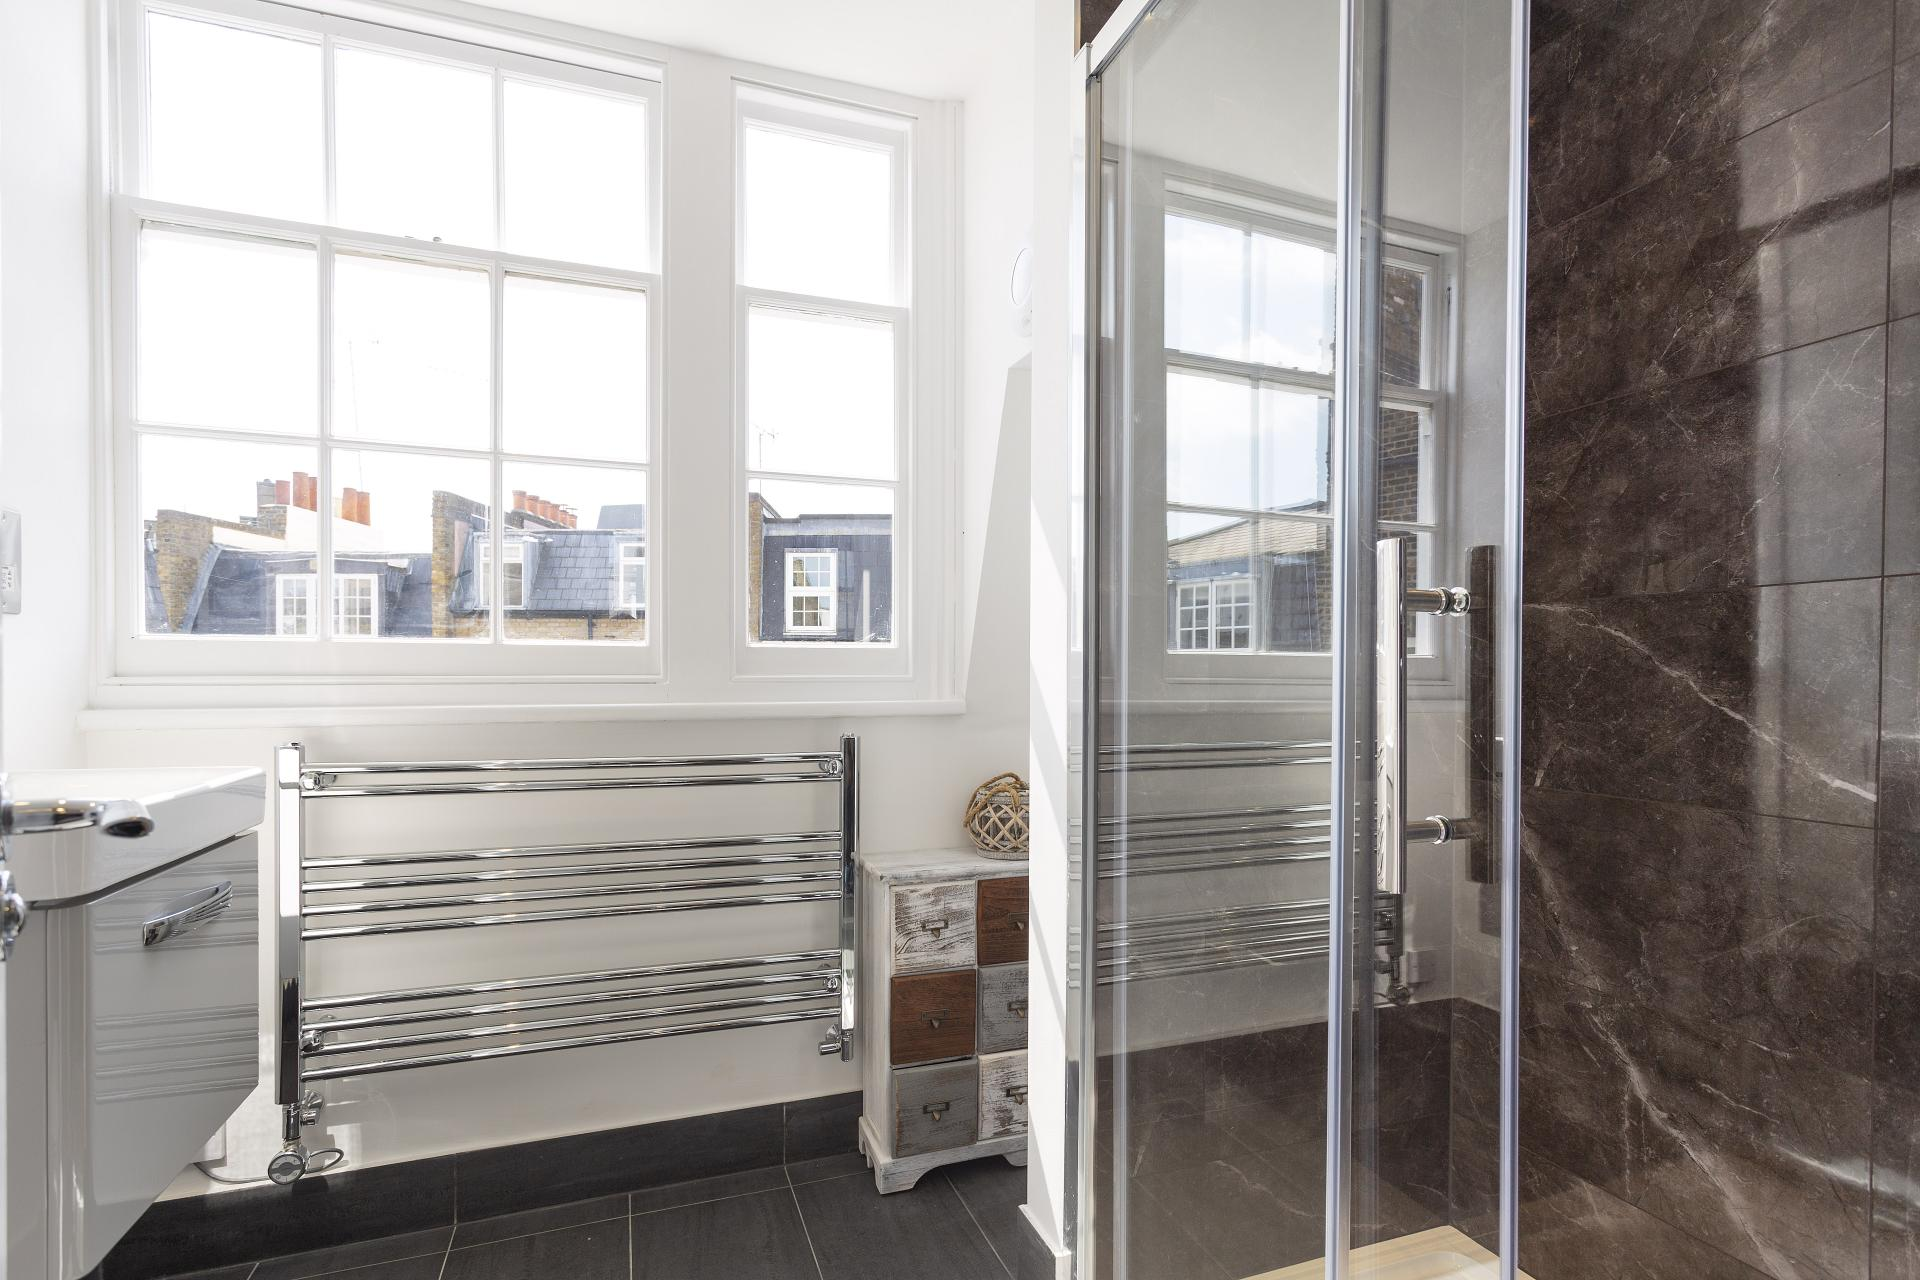 Shower at Luxury Knightsbridge House, Knightsbridge, London - Citybase Apartments